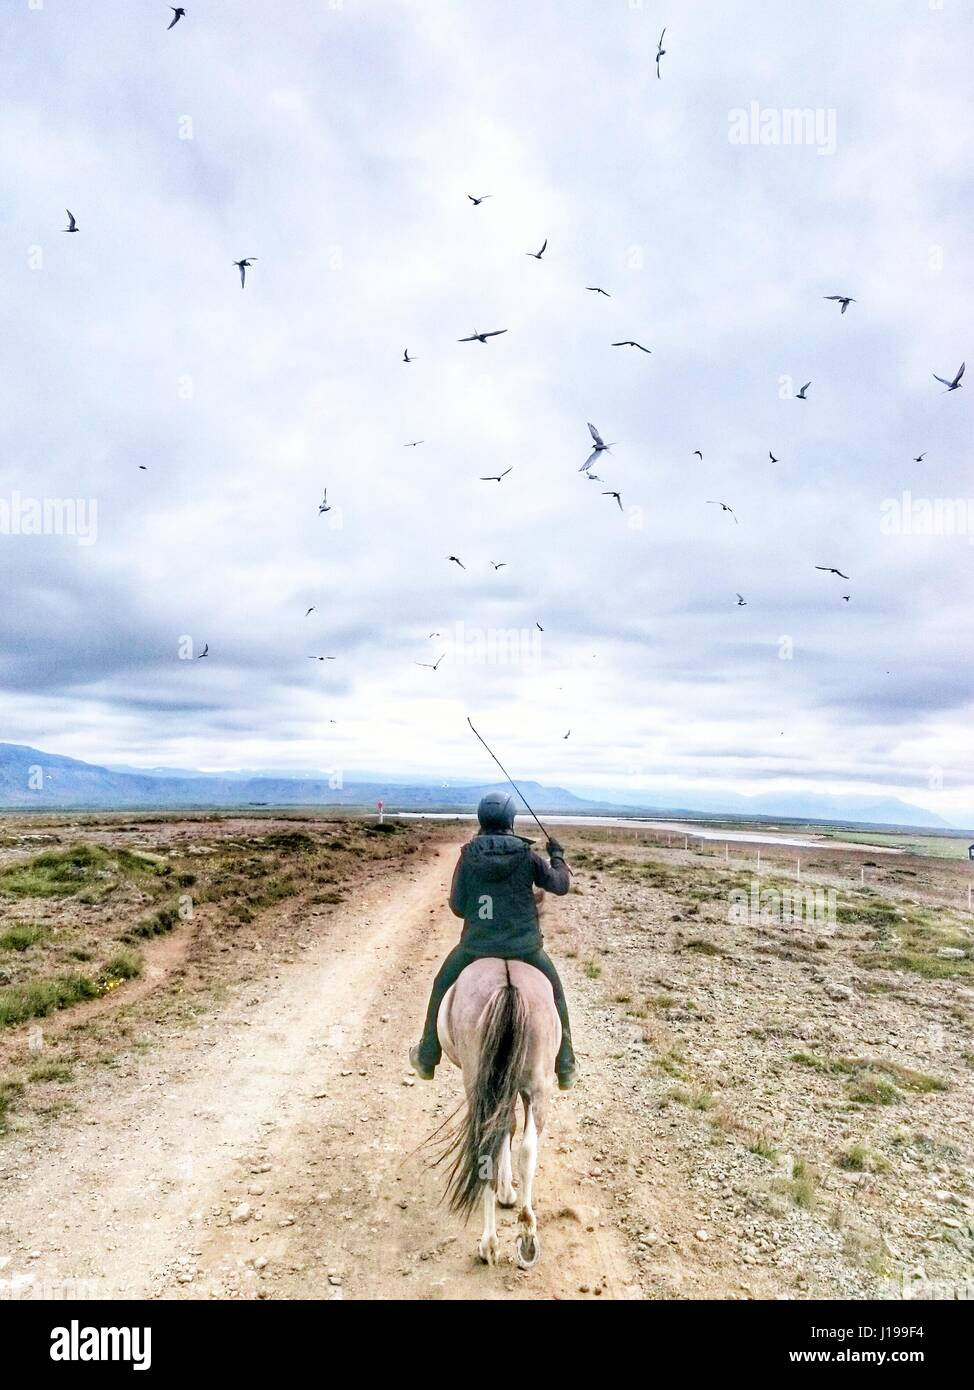 bird battlefield. horseback riding in Iceland is tricky with aggressive Arctic terns on attack. - Stock Image